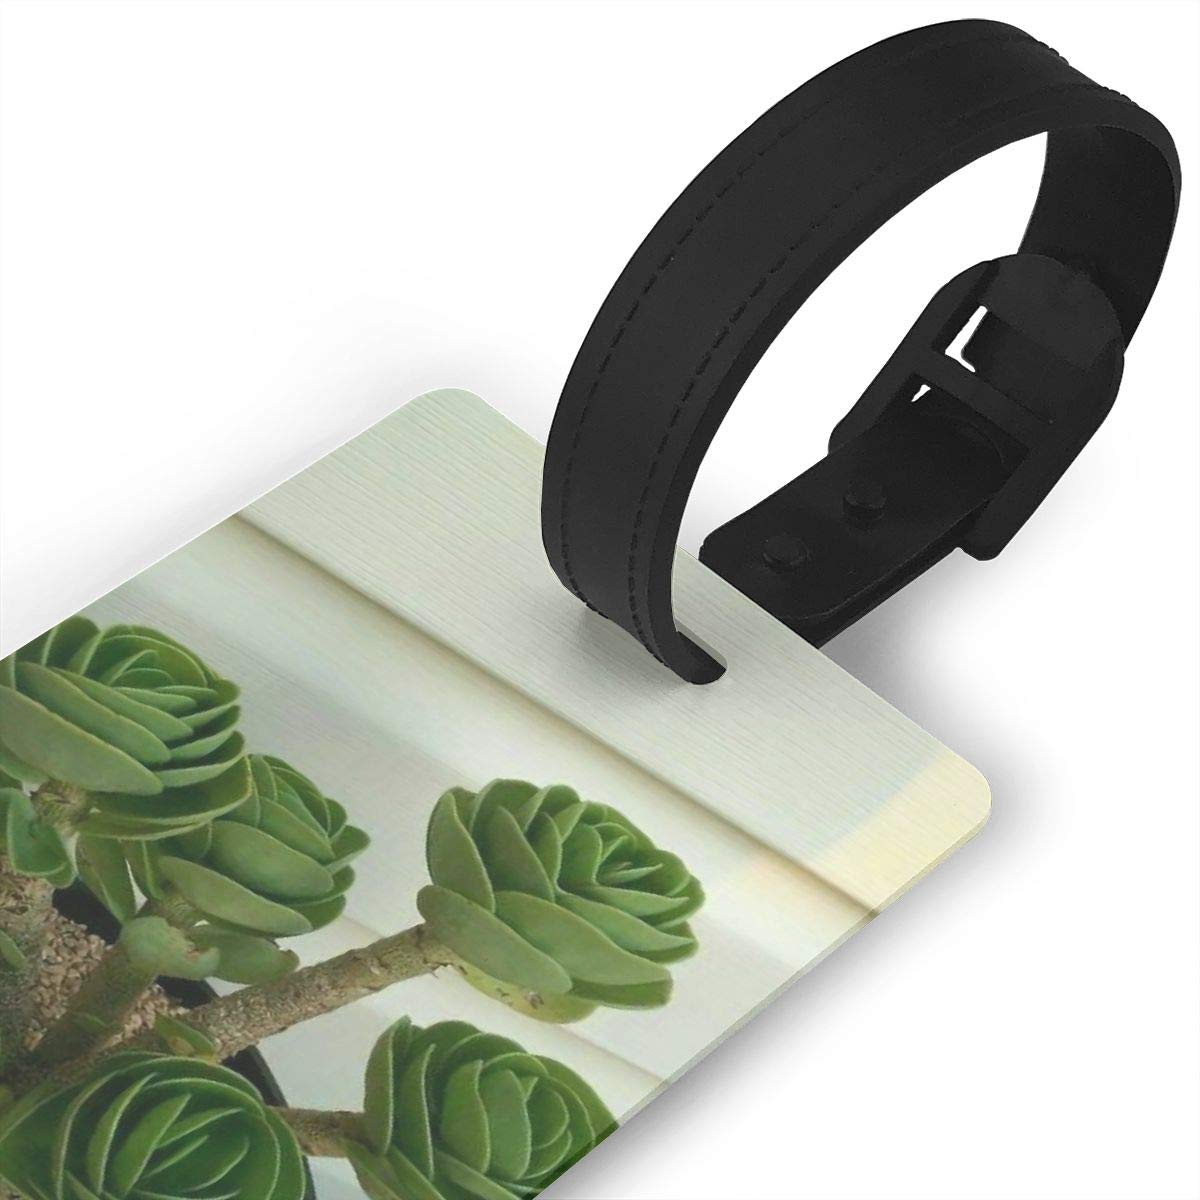 2 Pack Luggage Tags Bonsai Cruise Luggage Tag For Travel Tags Accessories